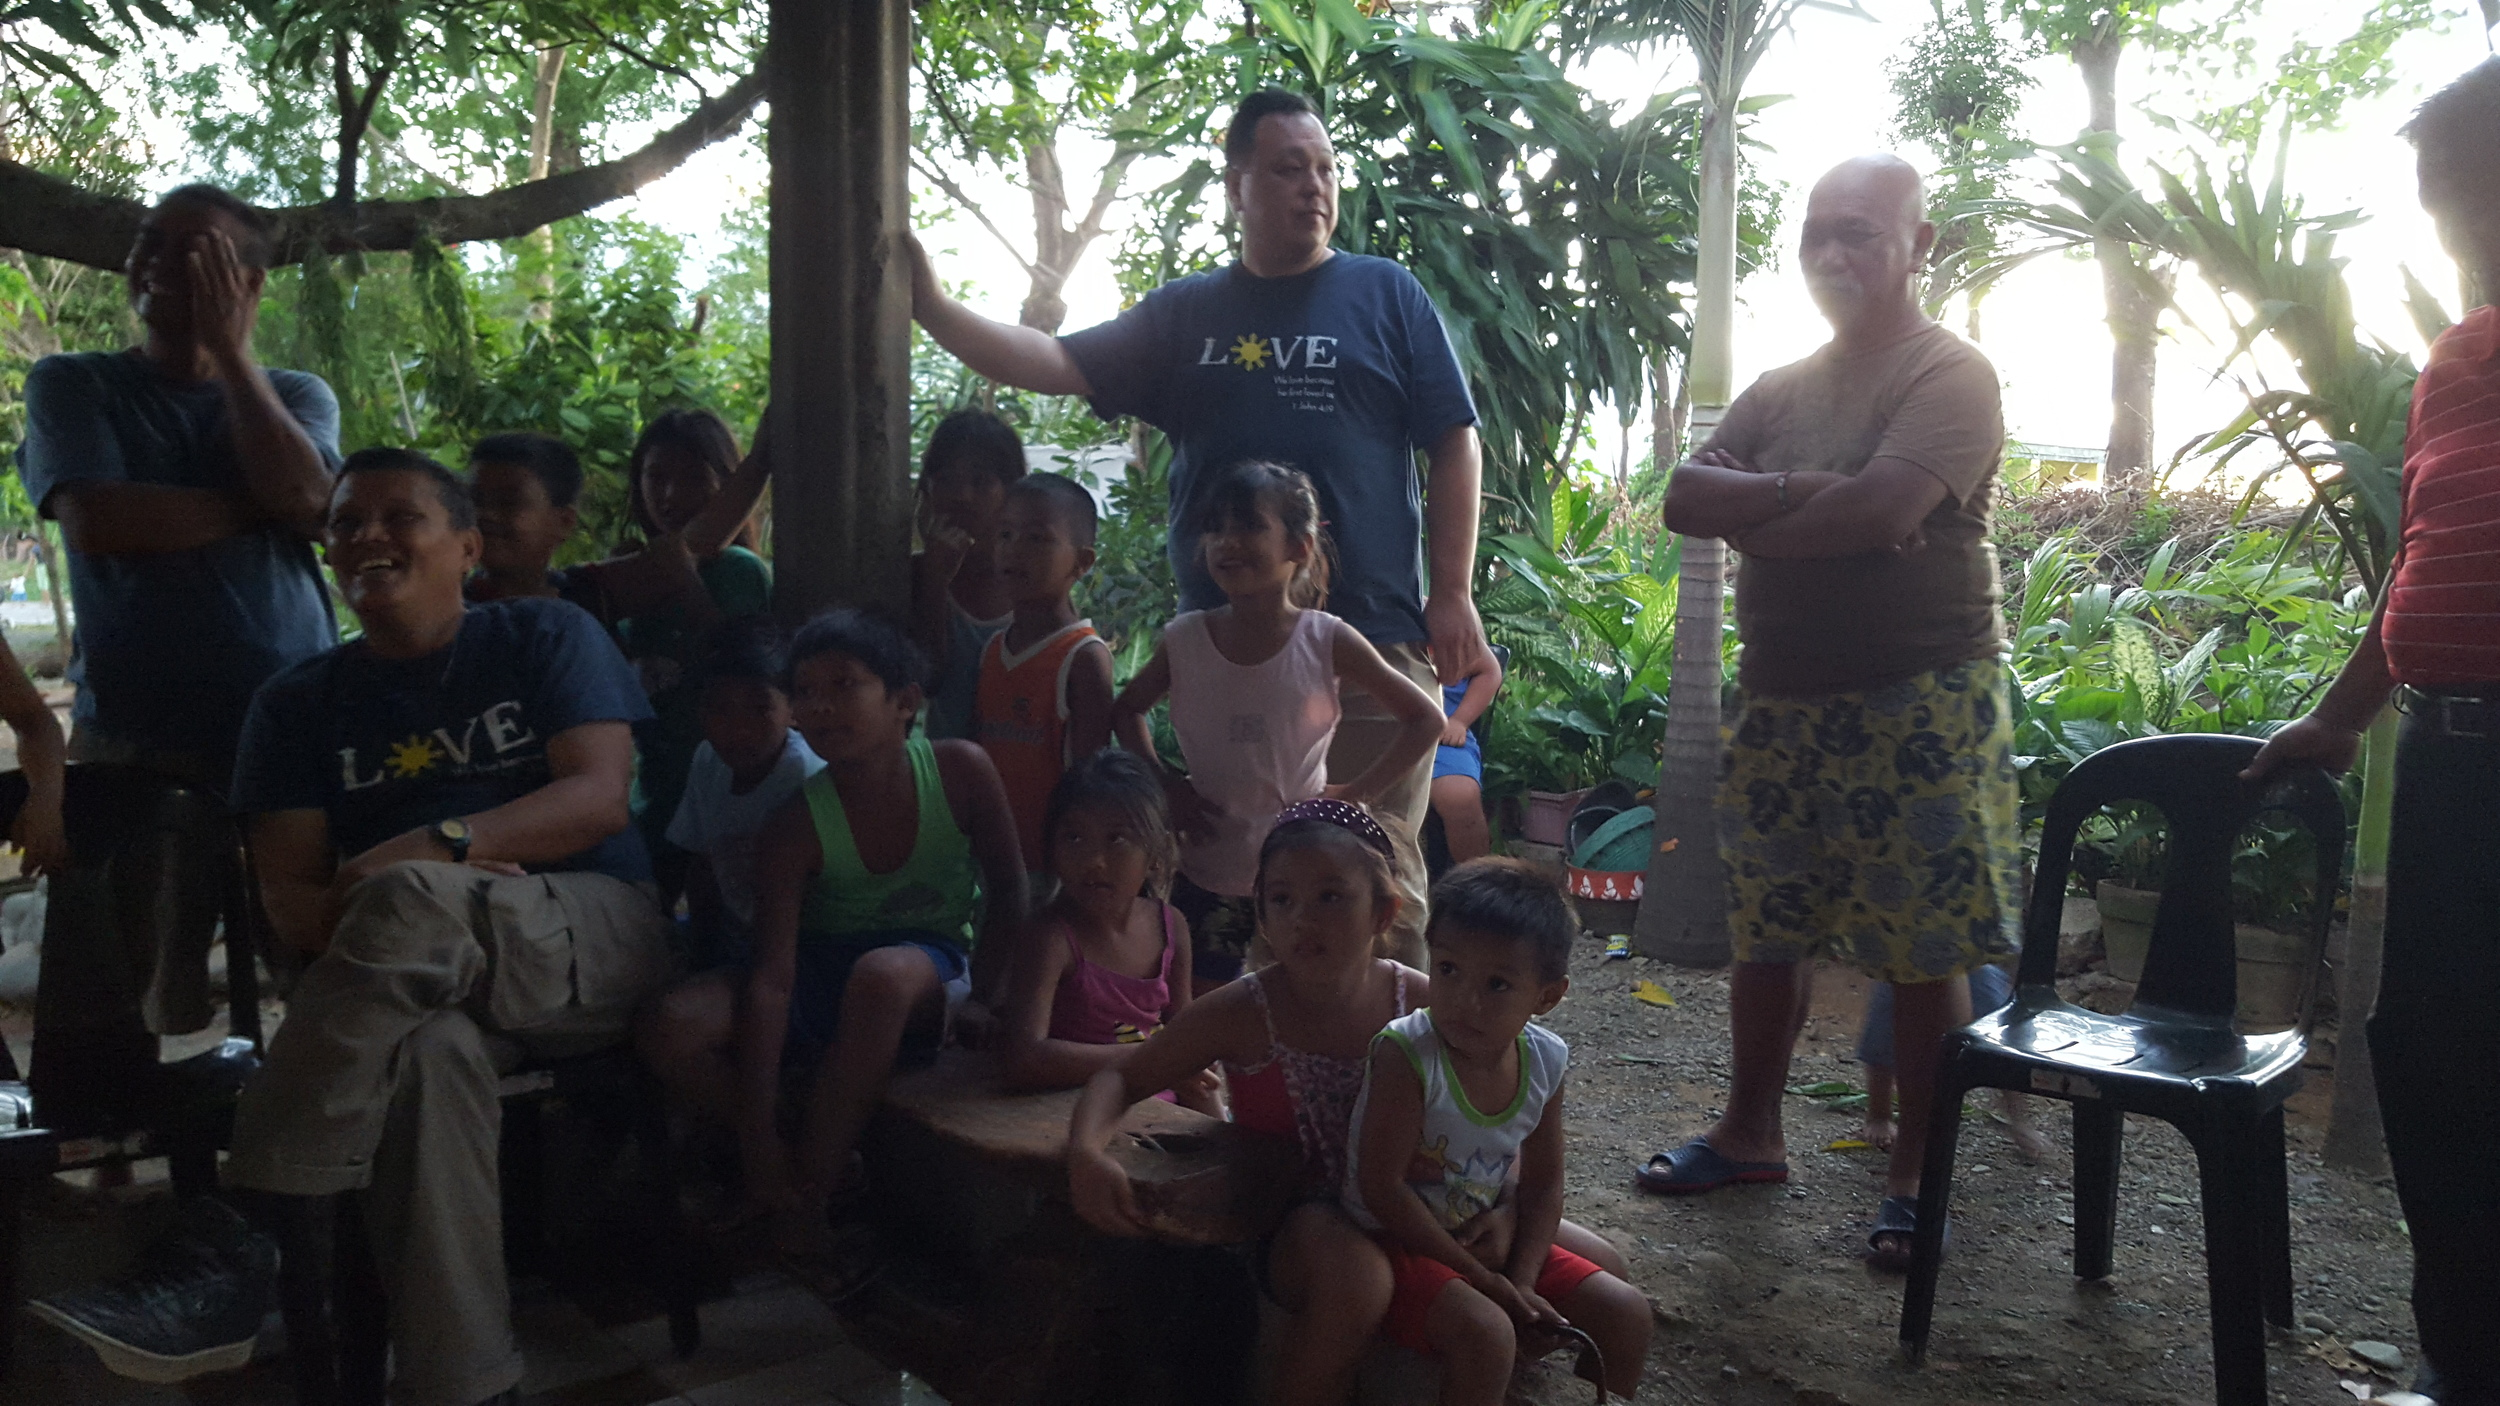 Pastor Alan with Mililani Baptist Missions Team in the Philippines